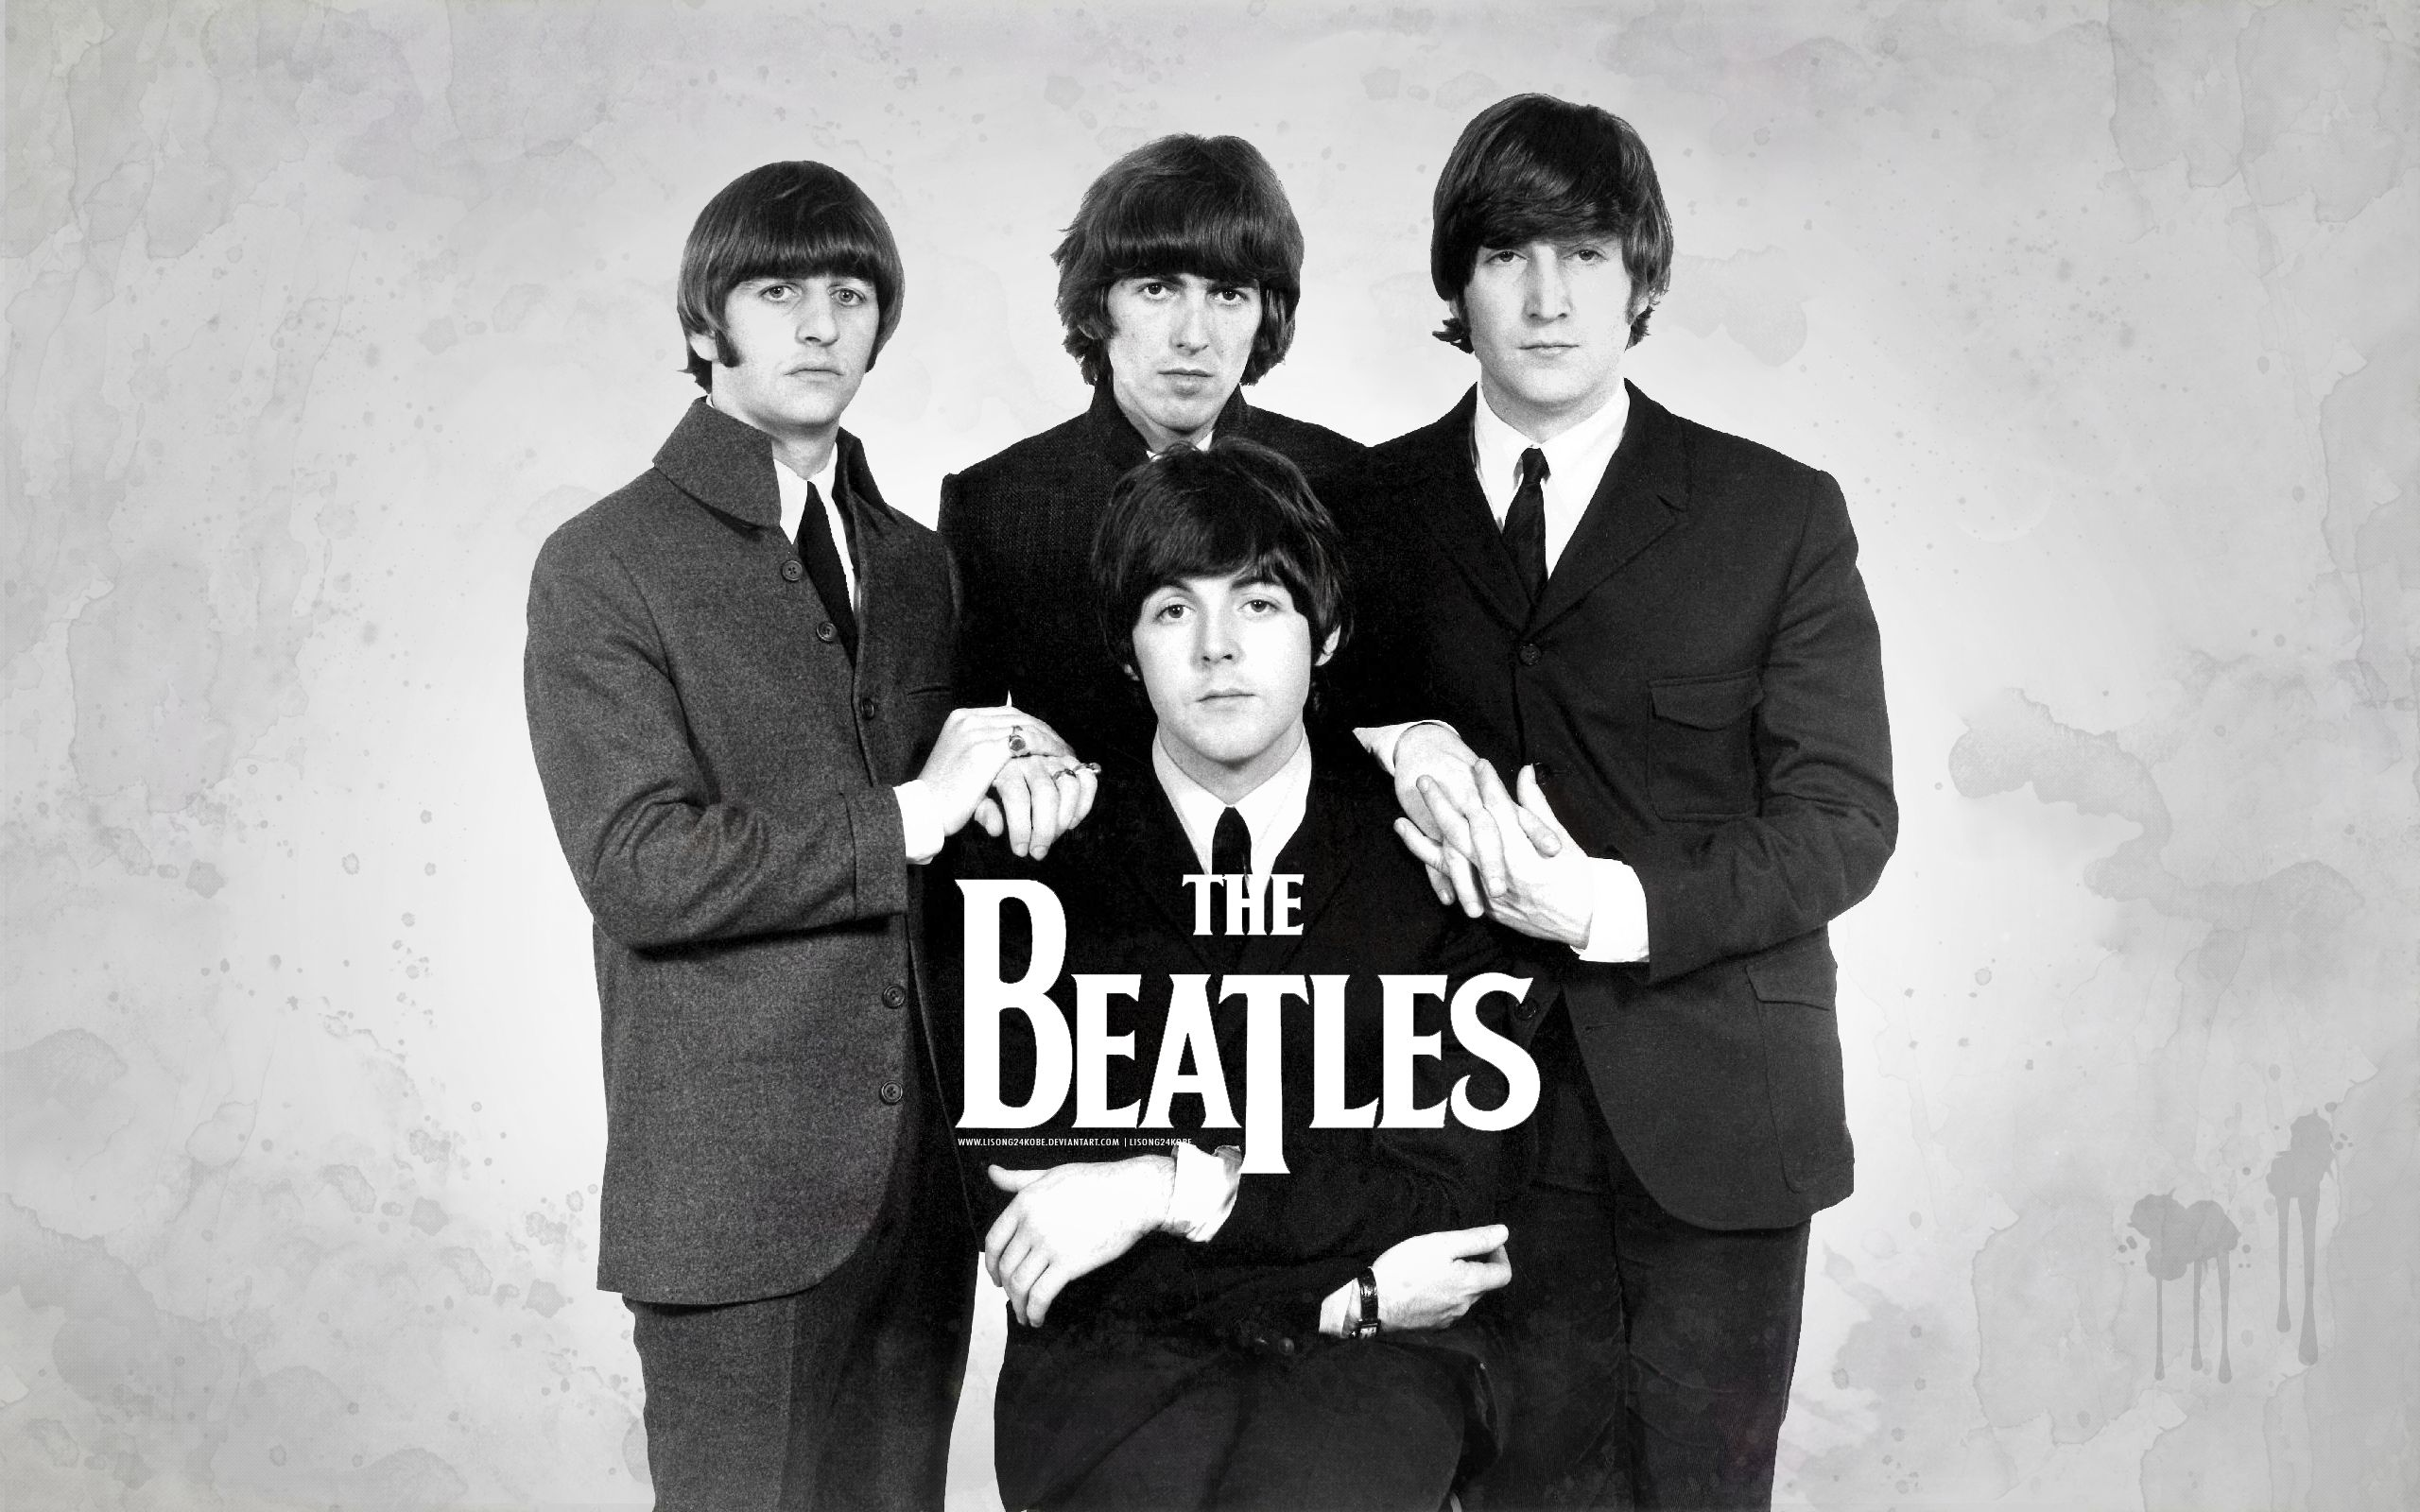 Coast To Coast AM  September 20 2014 Fame  The Beatles  The Beatles  The beatles greatest